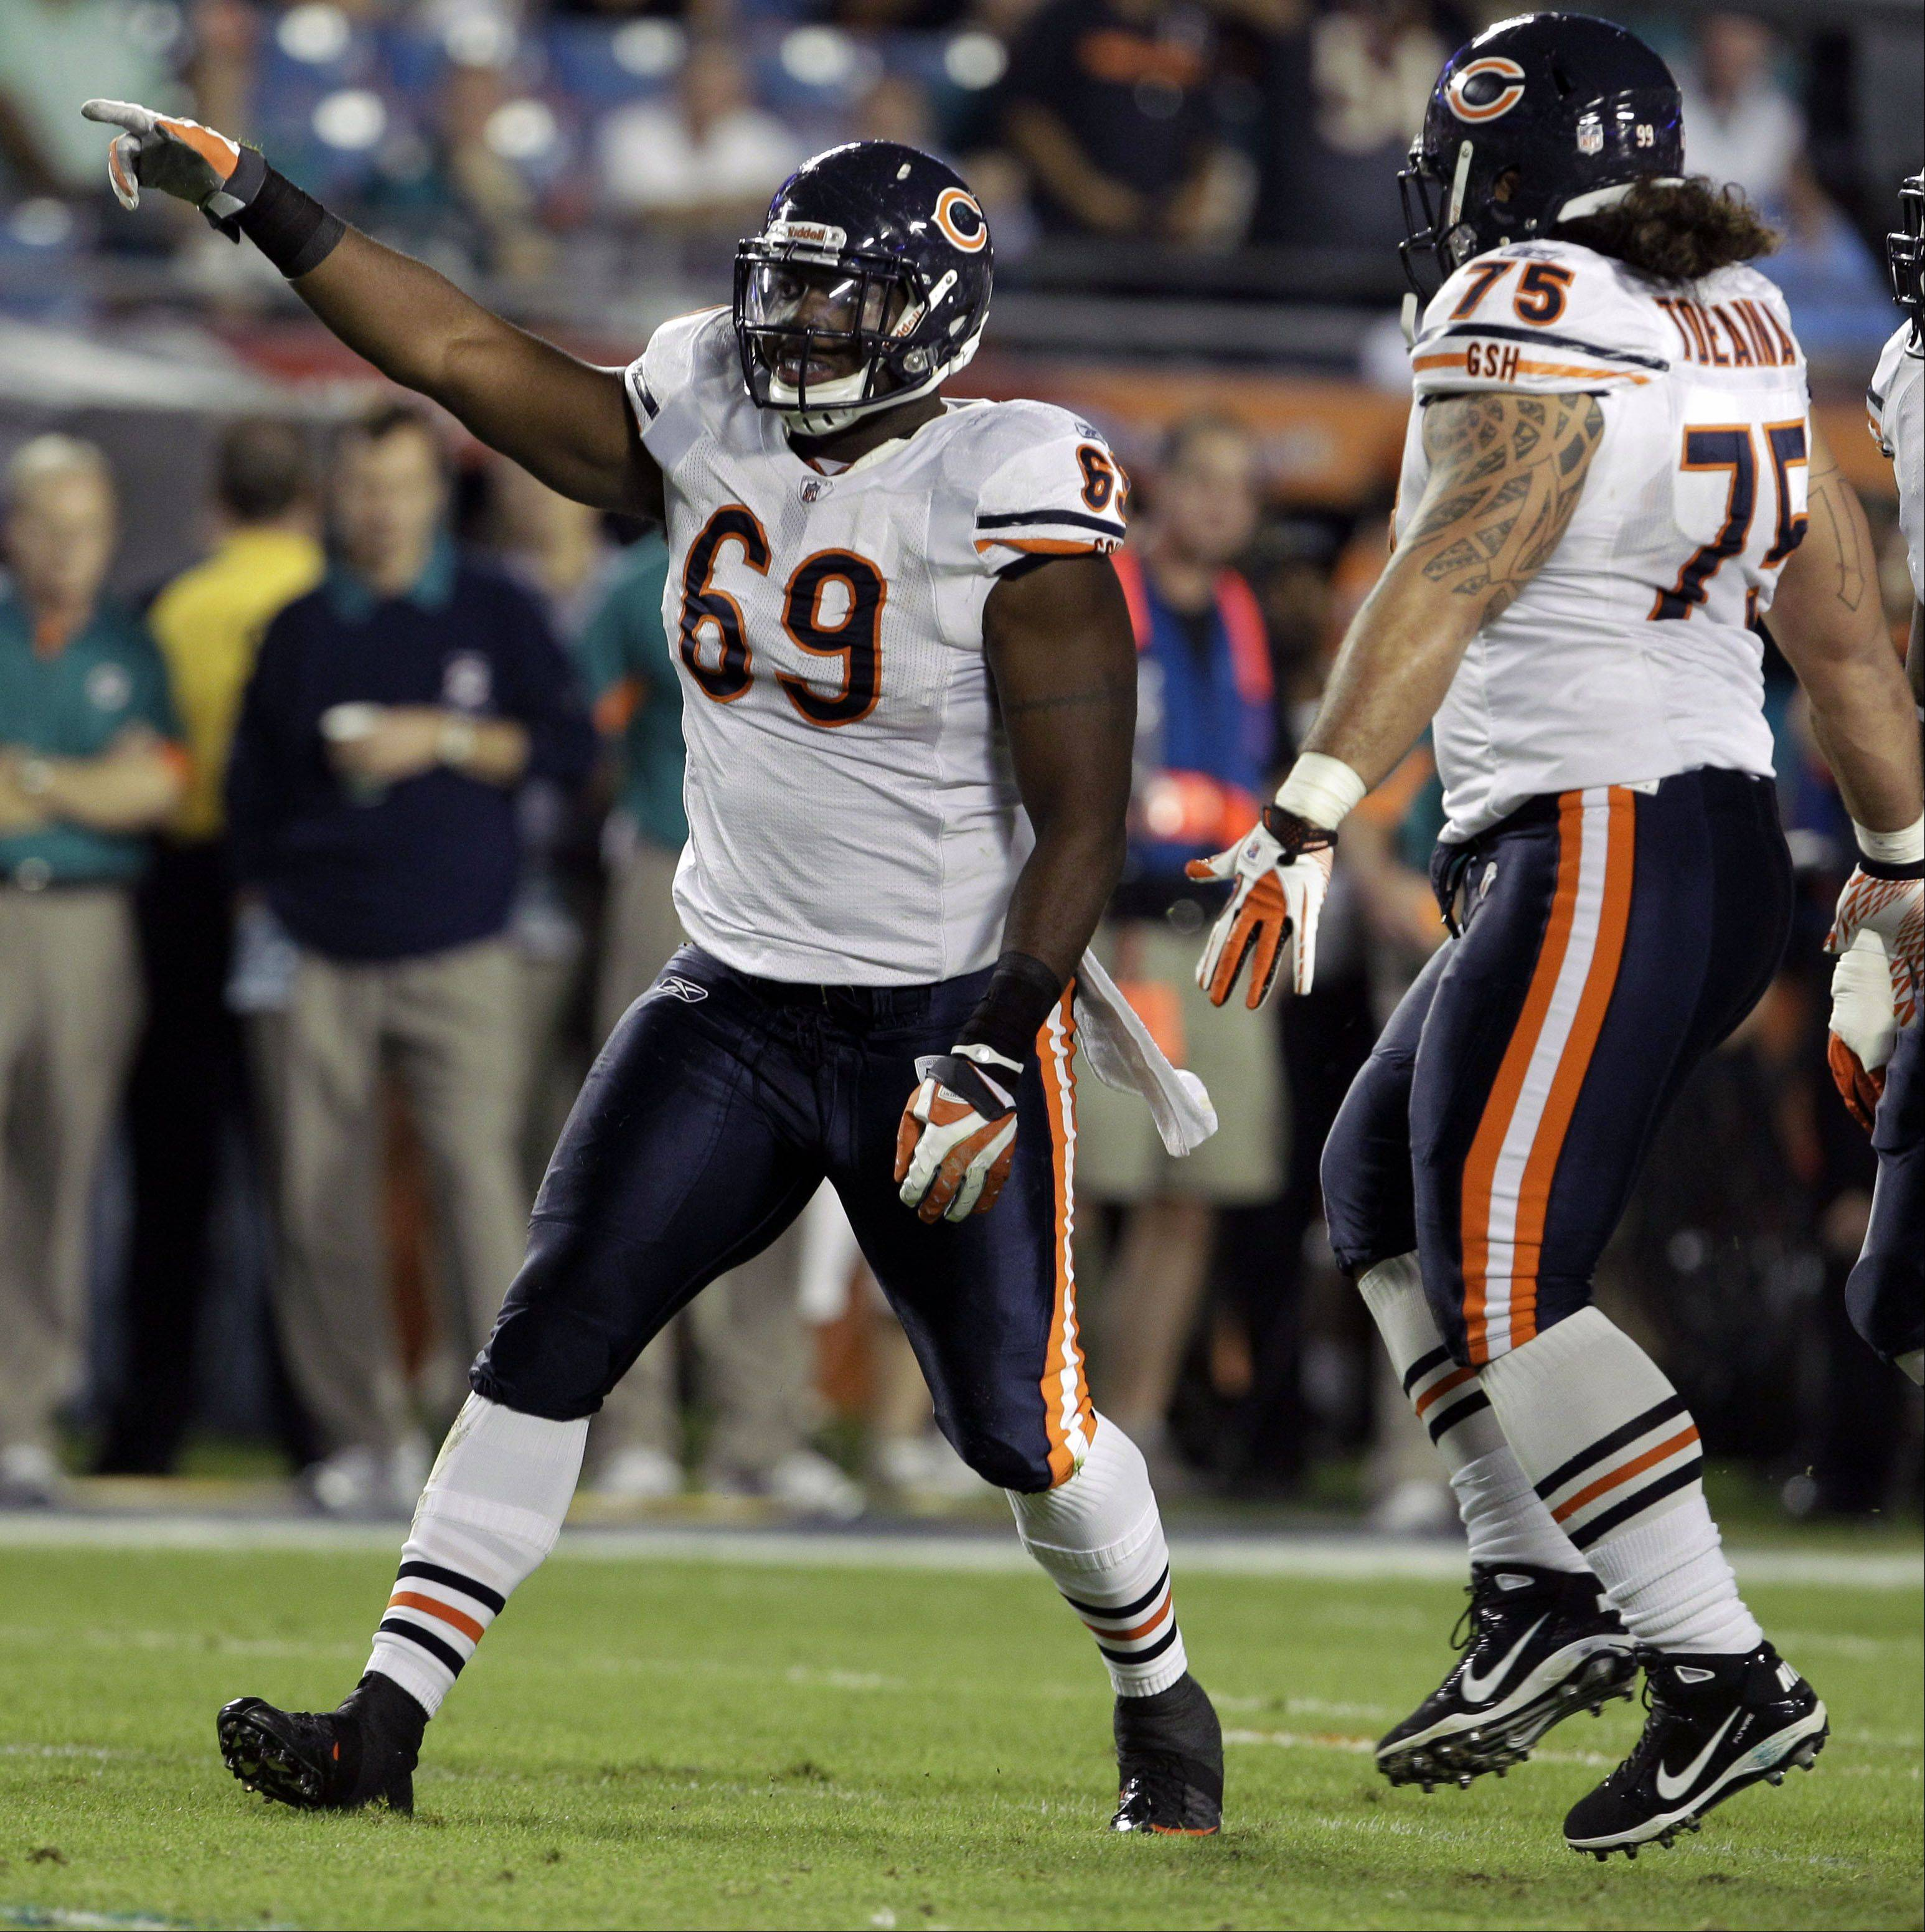 Henry Melton, left, and Matt Toeaina, here celebrating a sack in Miami last season, figure to provide solid depth along the defensive front for the Bears.